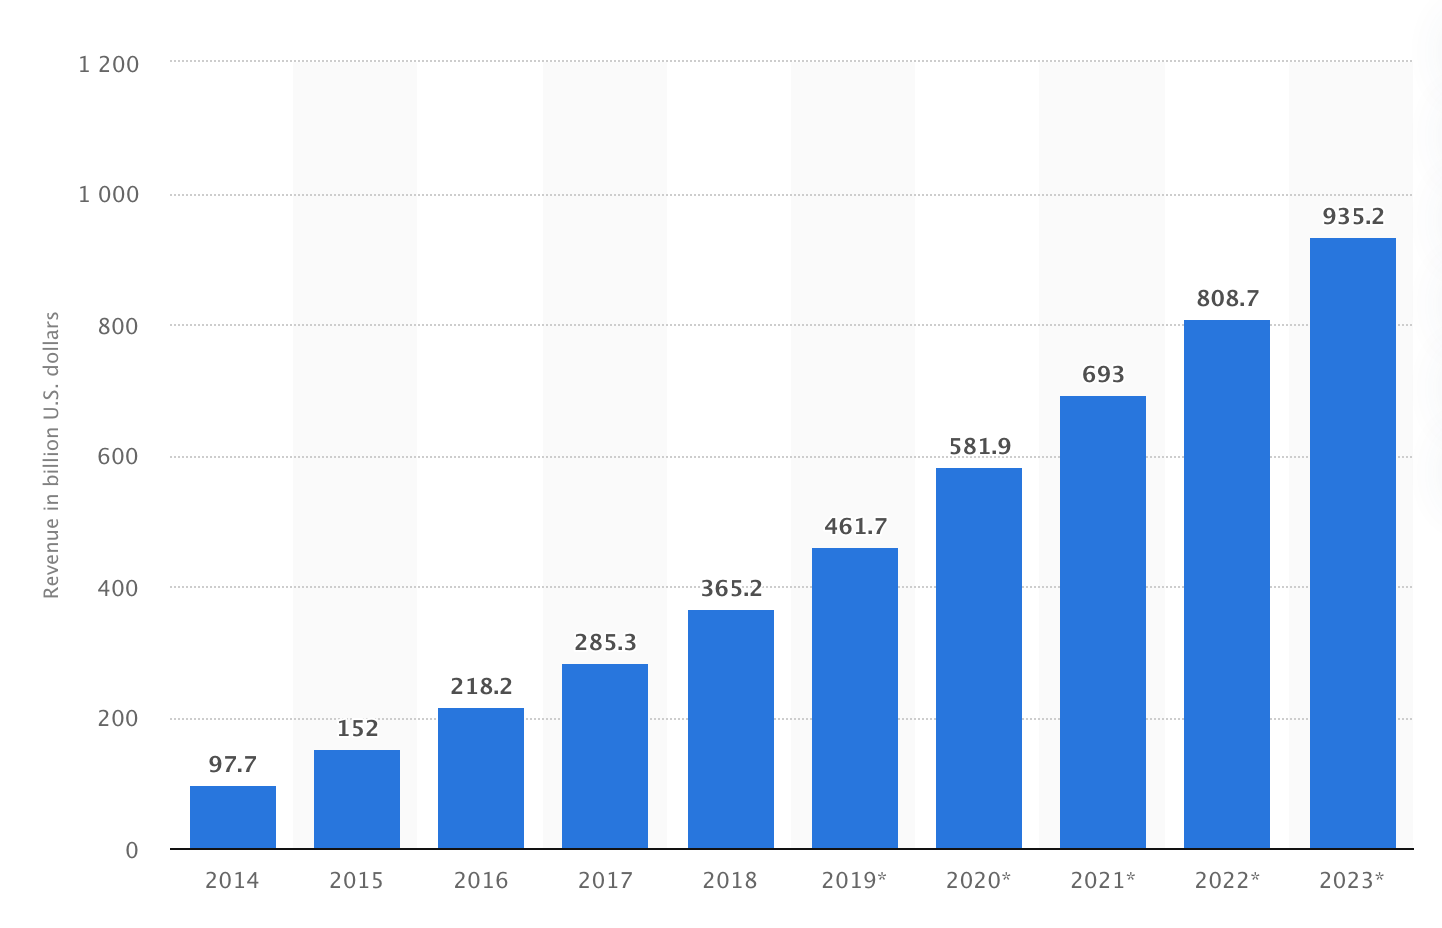 Global mobile app revenues from 2014 to 2021 statista